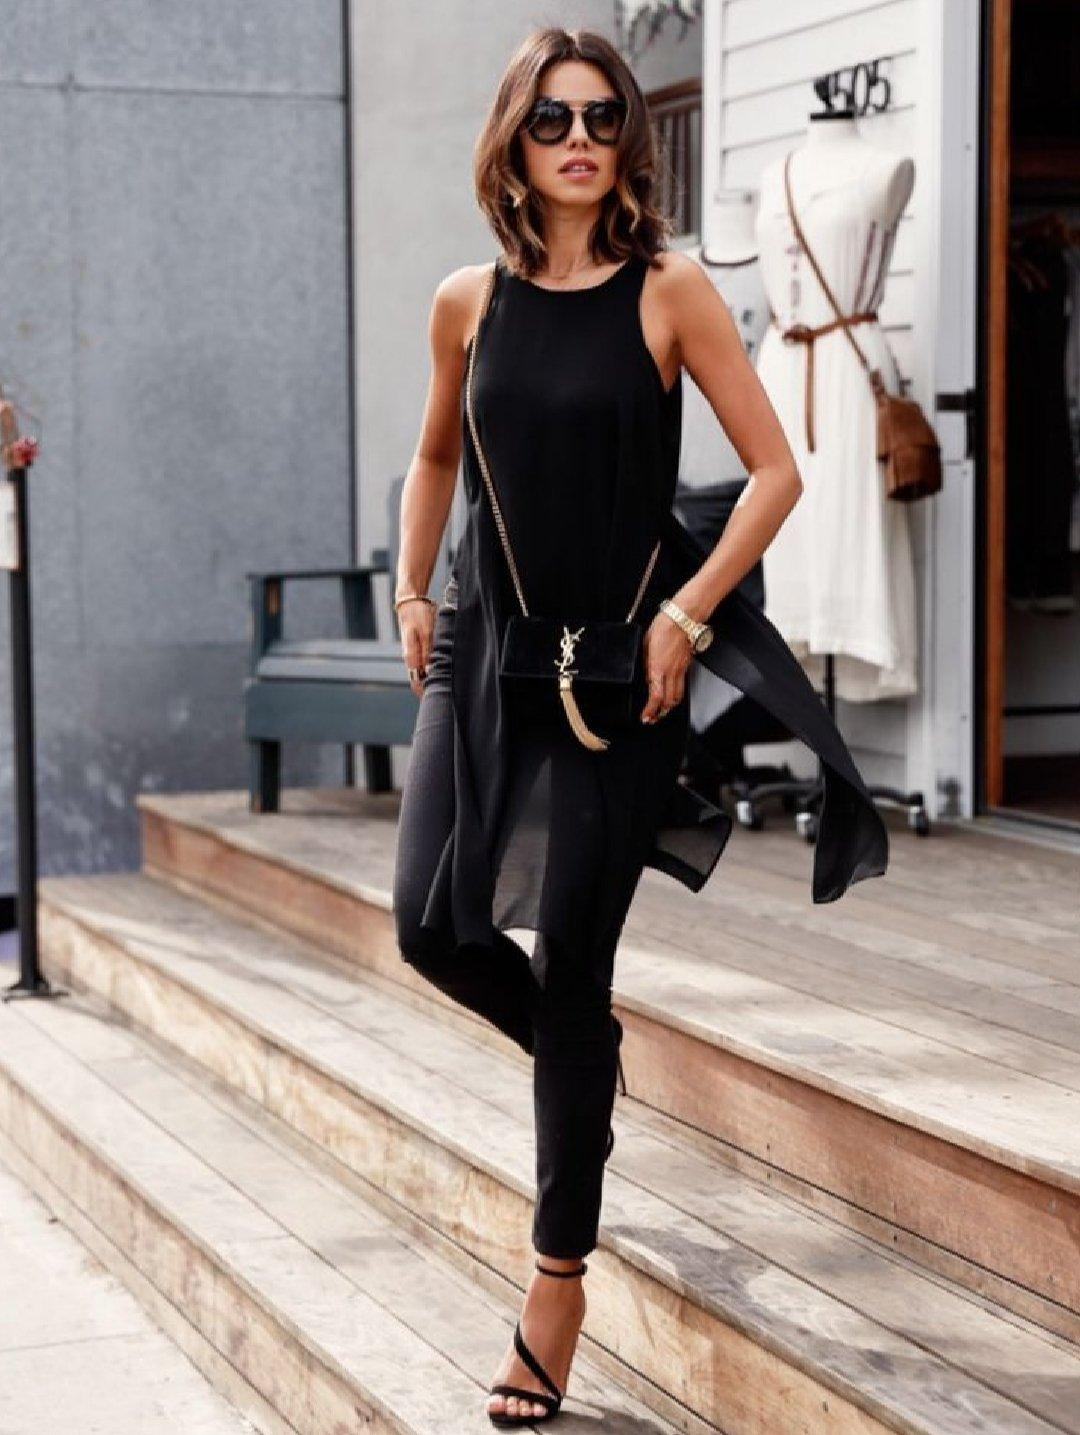 A stylish black outfit is perfect for special occasions